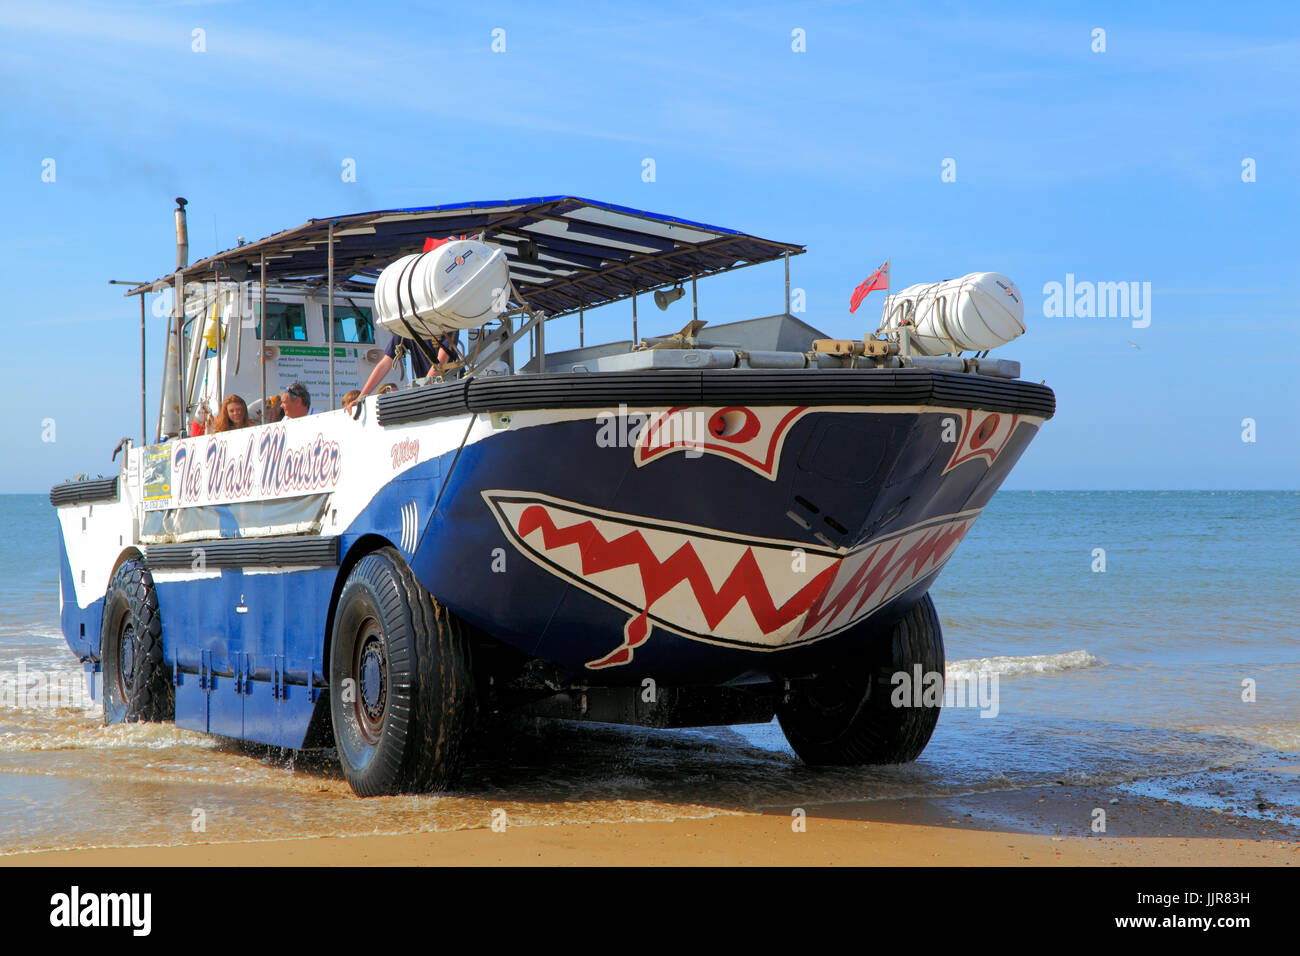 The Wash Monster, pleasure cruises, amphibious vehicle, Hunstanton Beach, Norfolk, England, UK - Stock Image